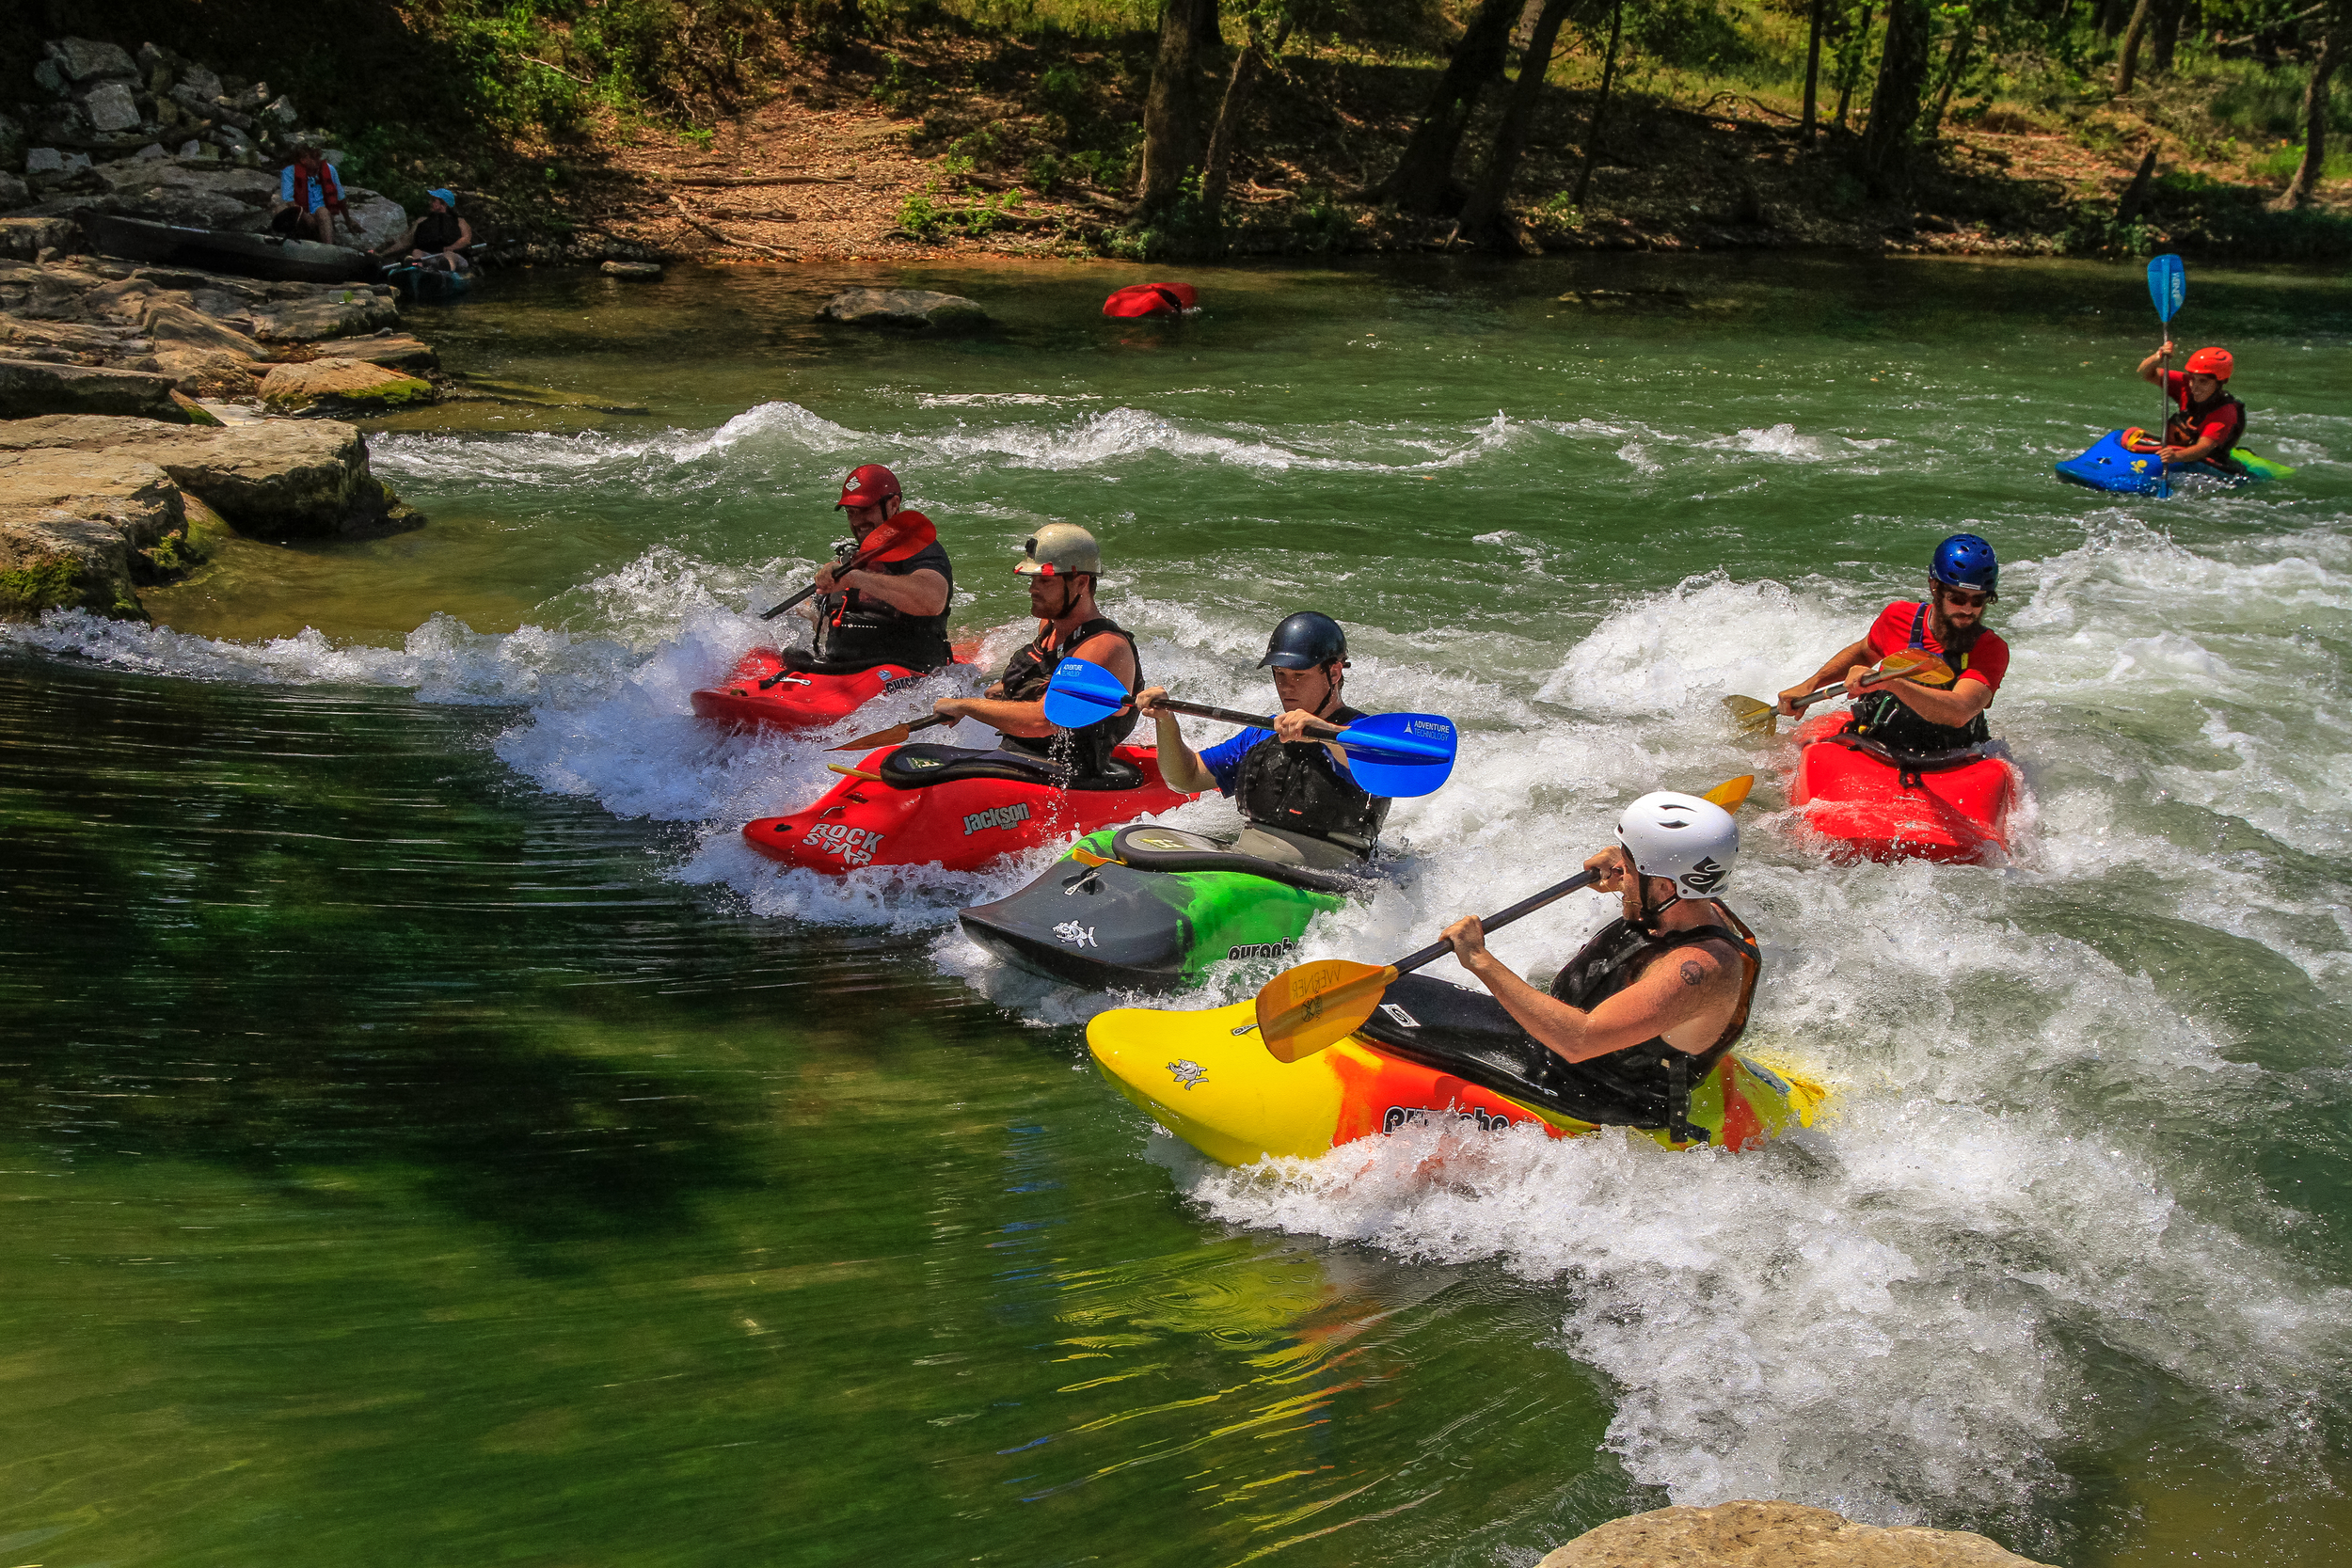 The Siloam Springs Kayak Park is whitewater fun for kayakers and canoeists of all skill levels.